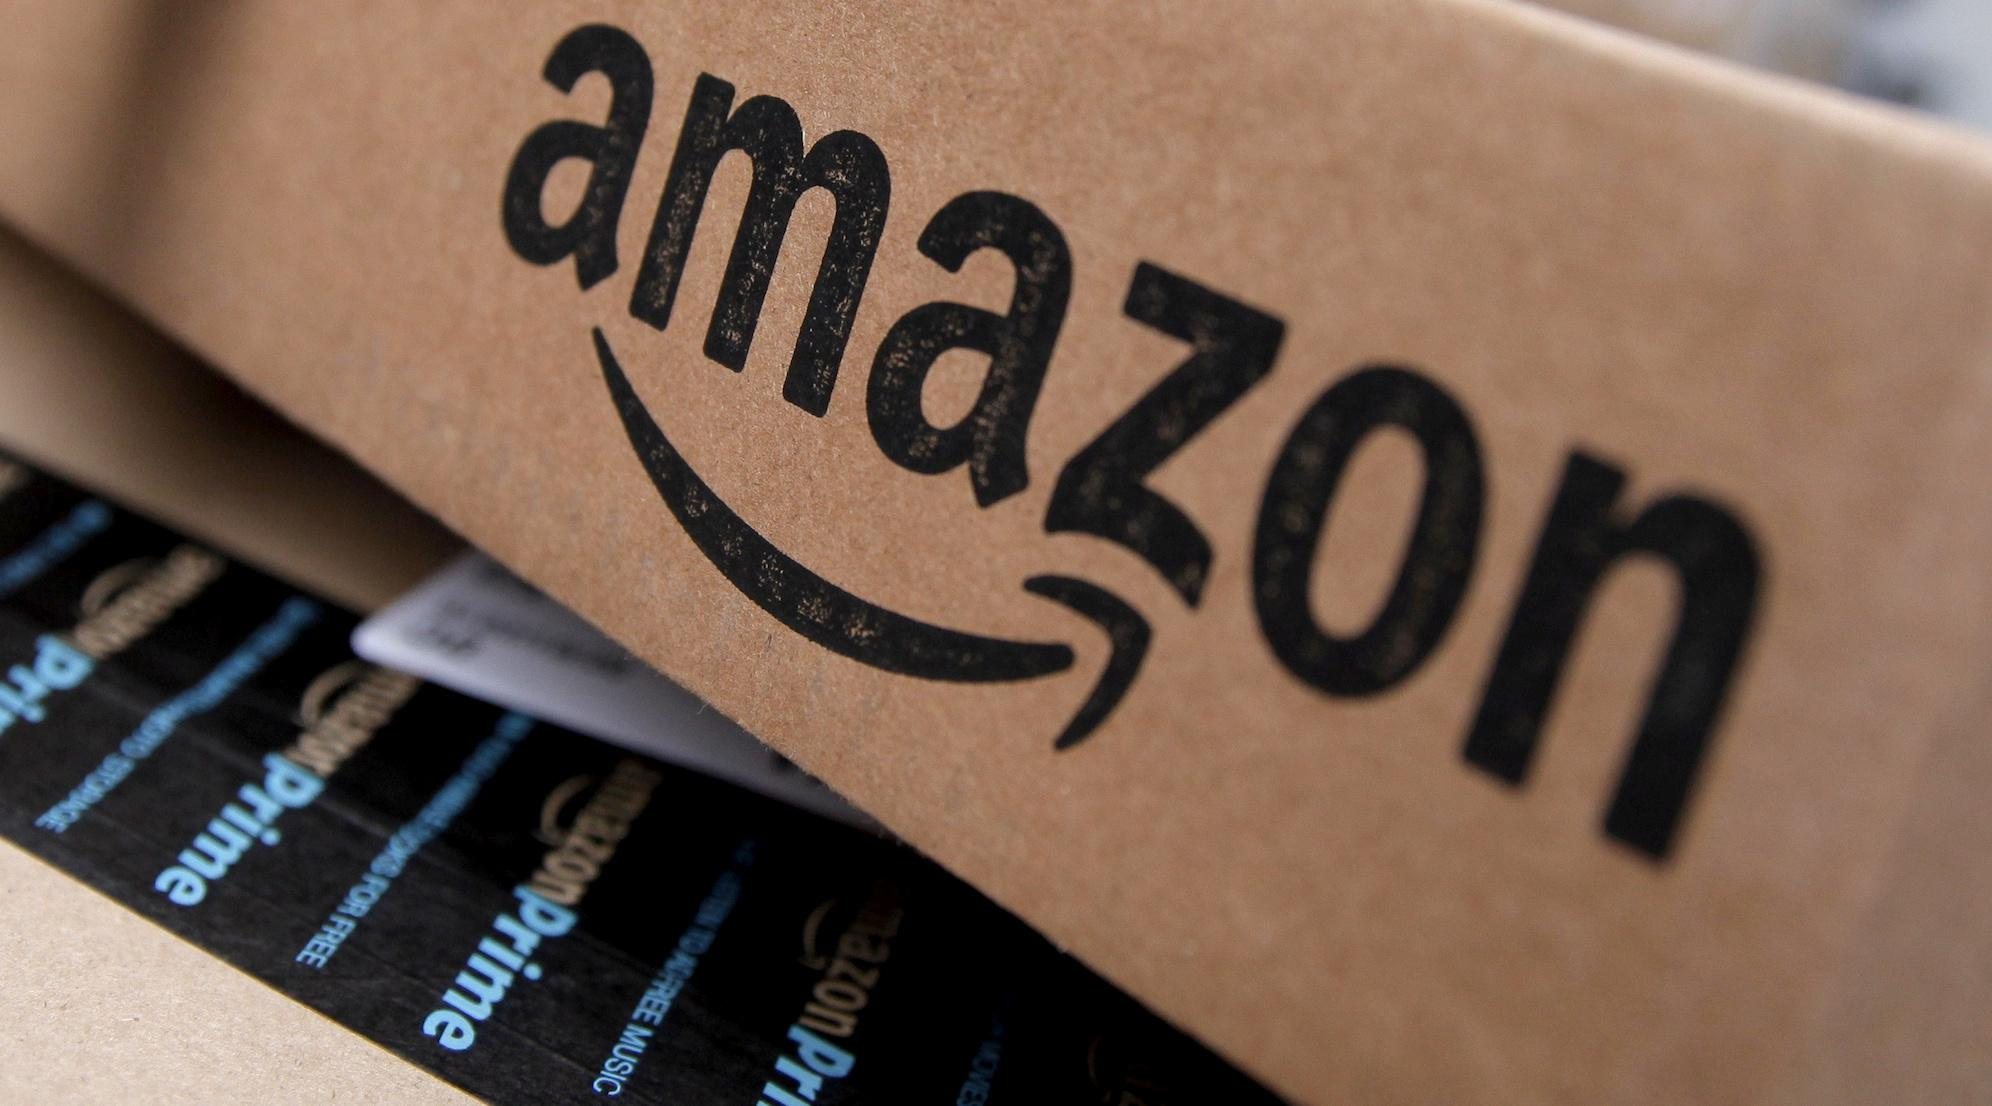 Amazon Email Scam Could Cost Up To 750 Heres What You Should